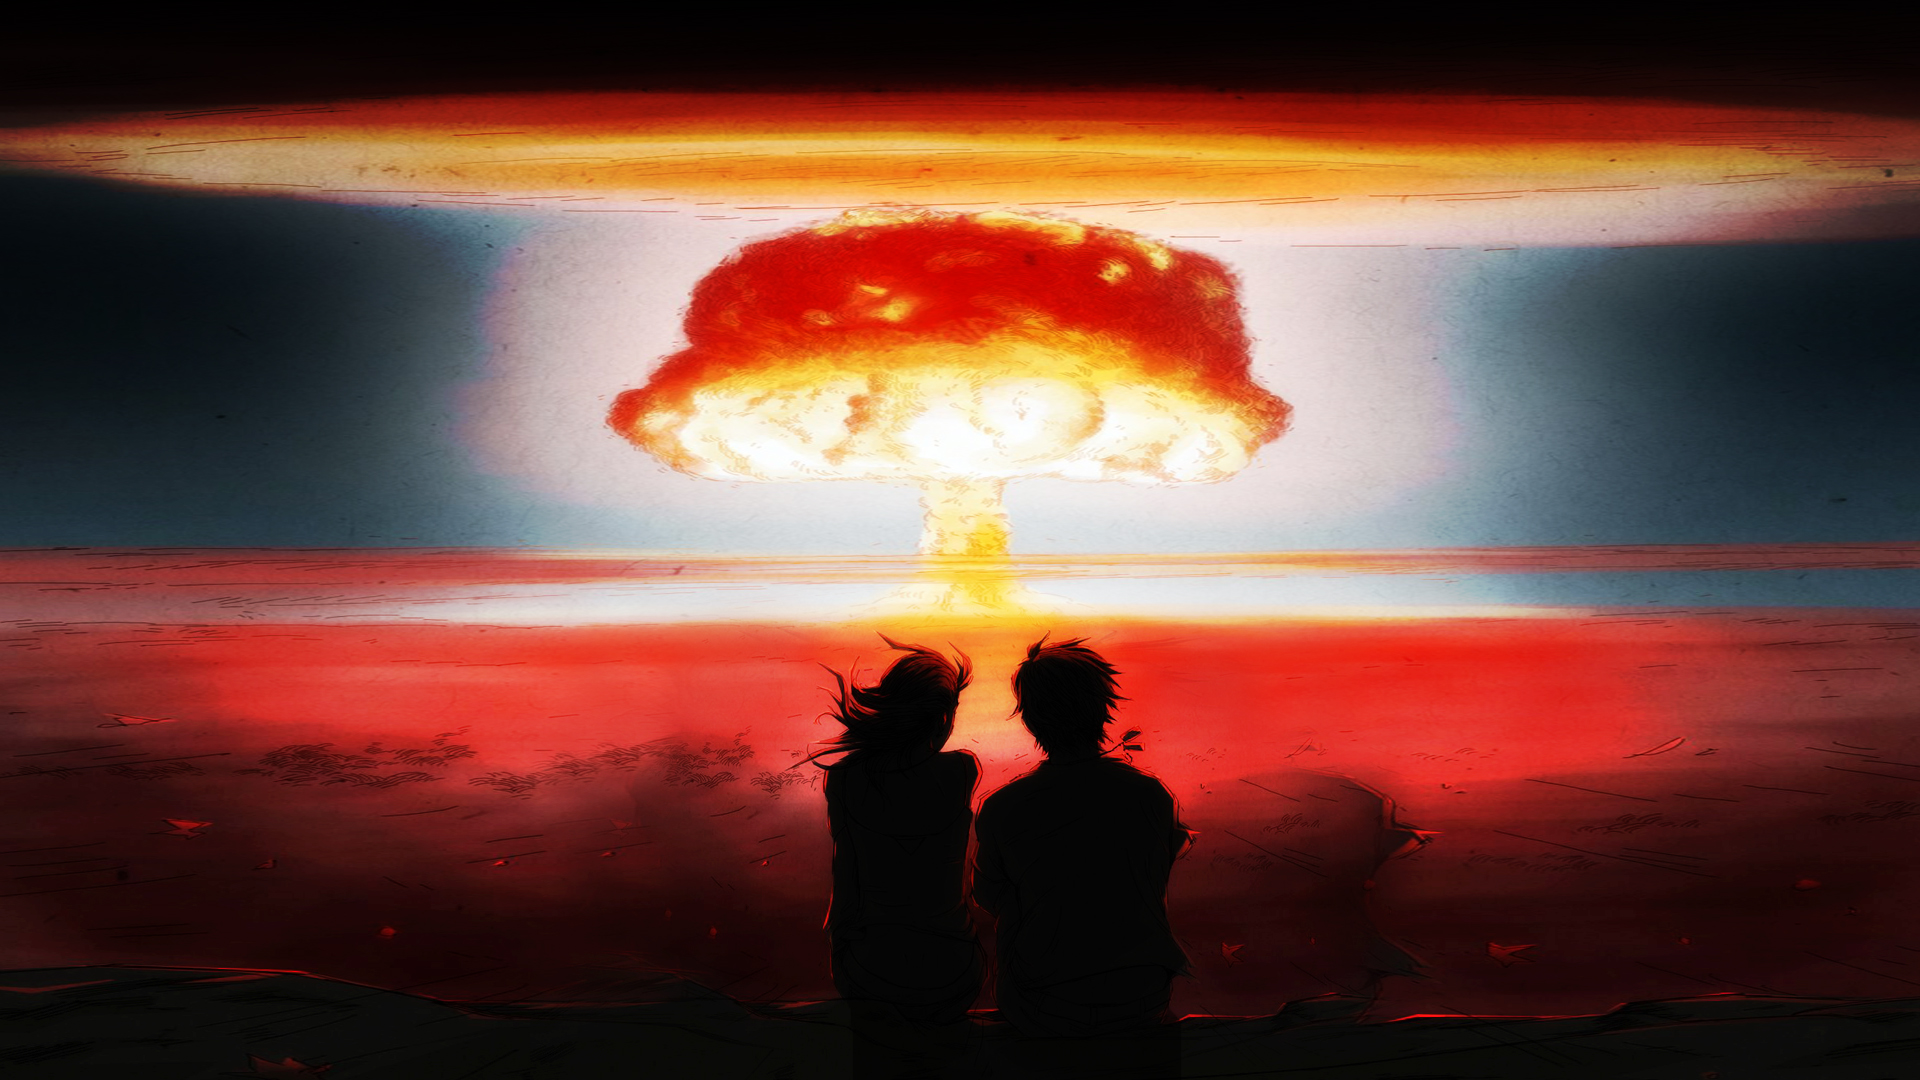 hd wallpapers atomic explosion - photo #10